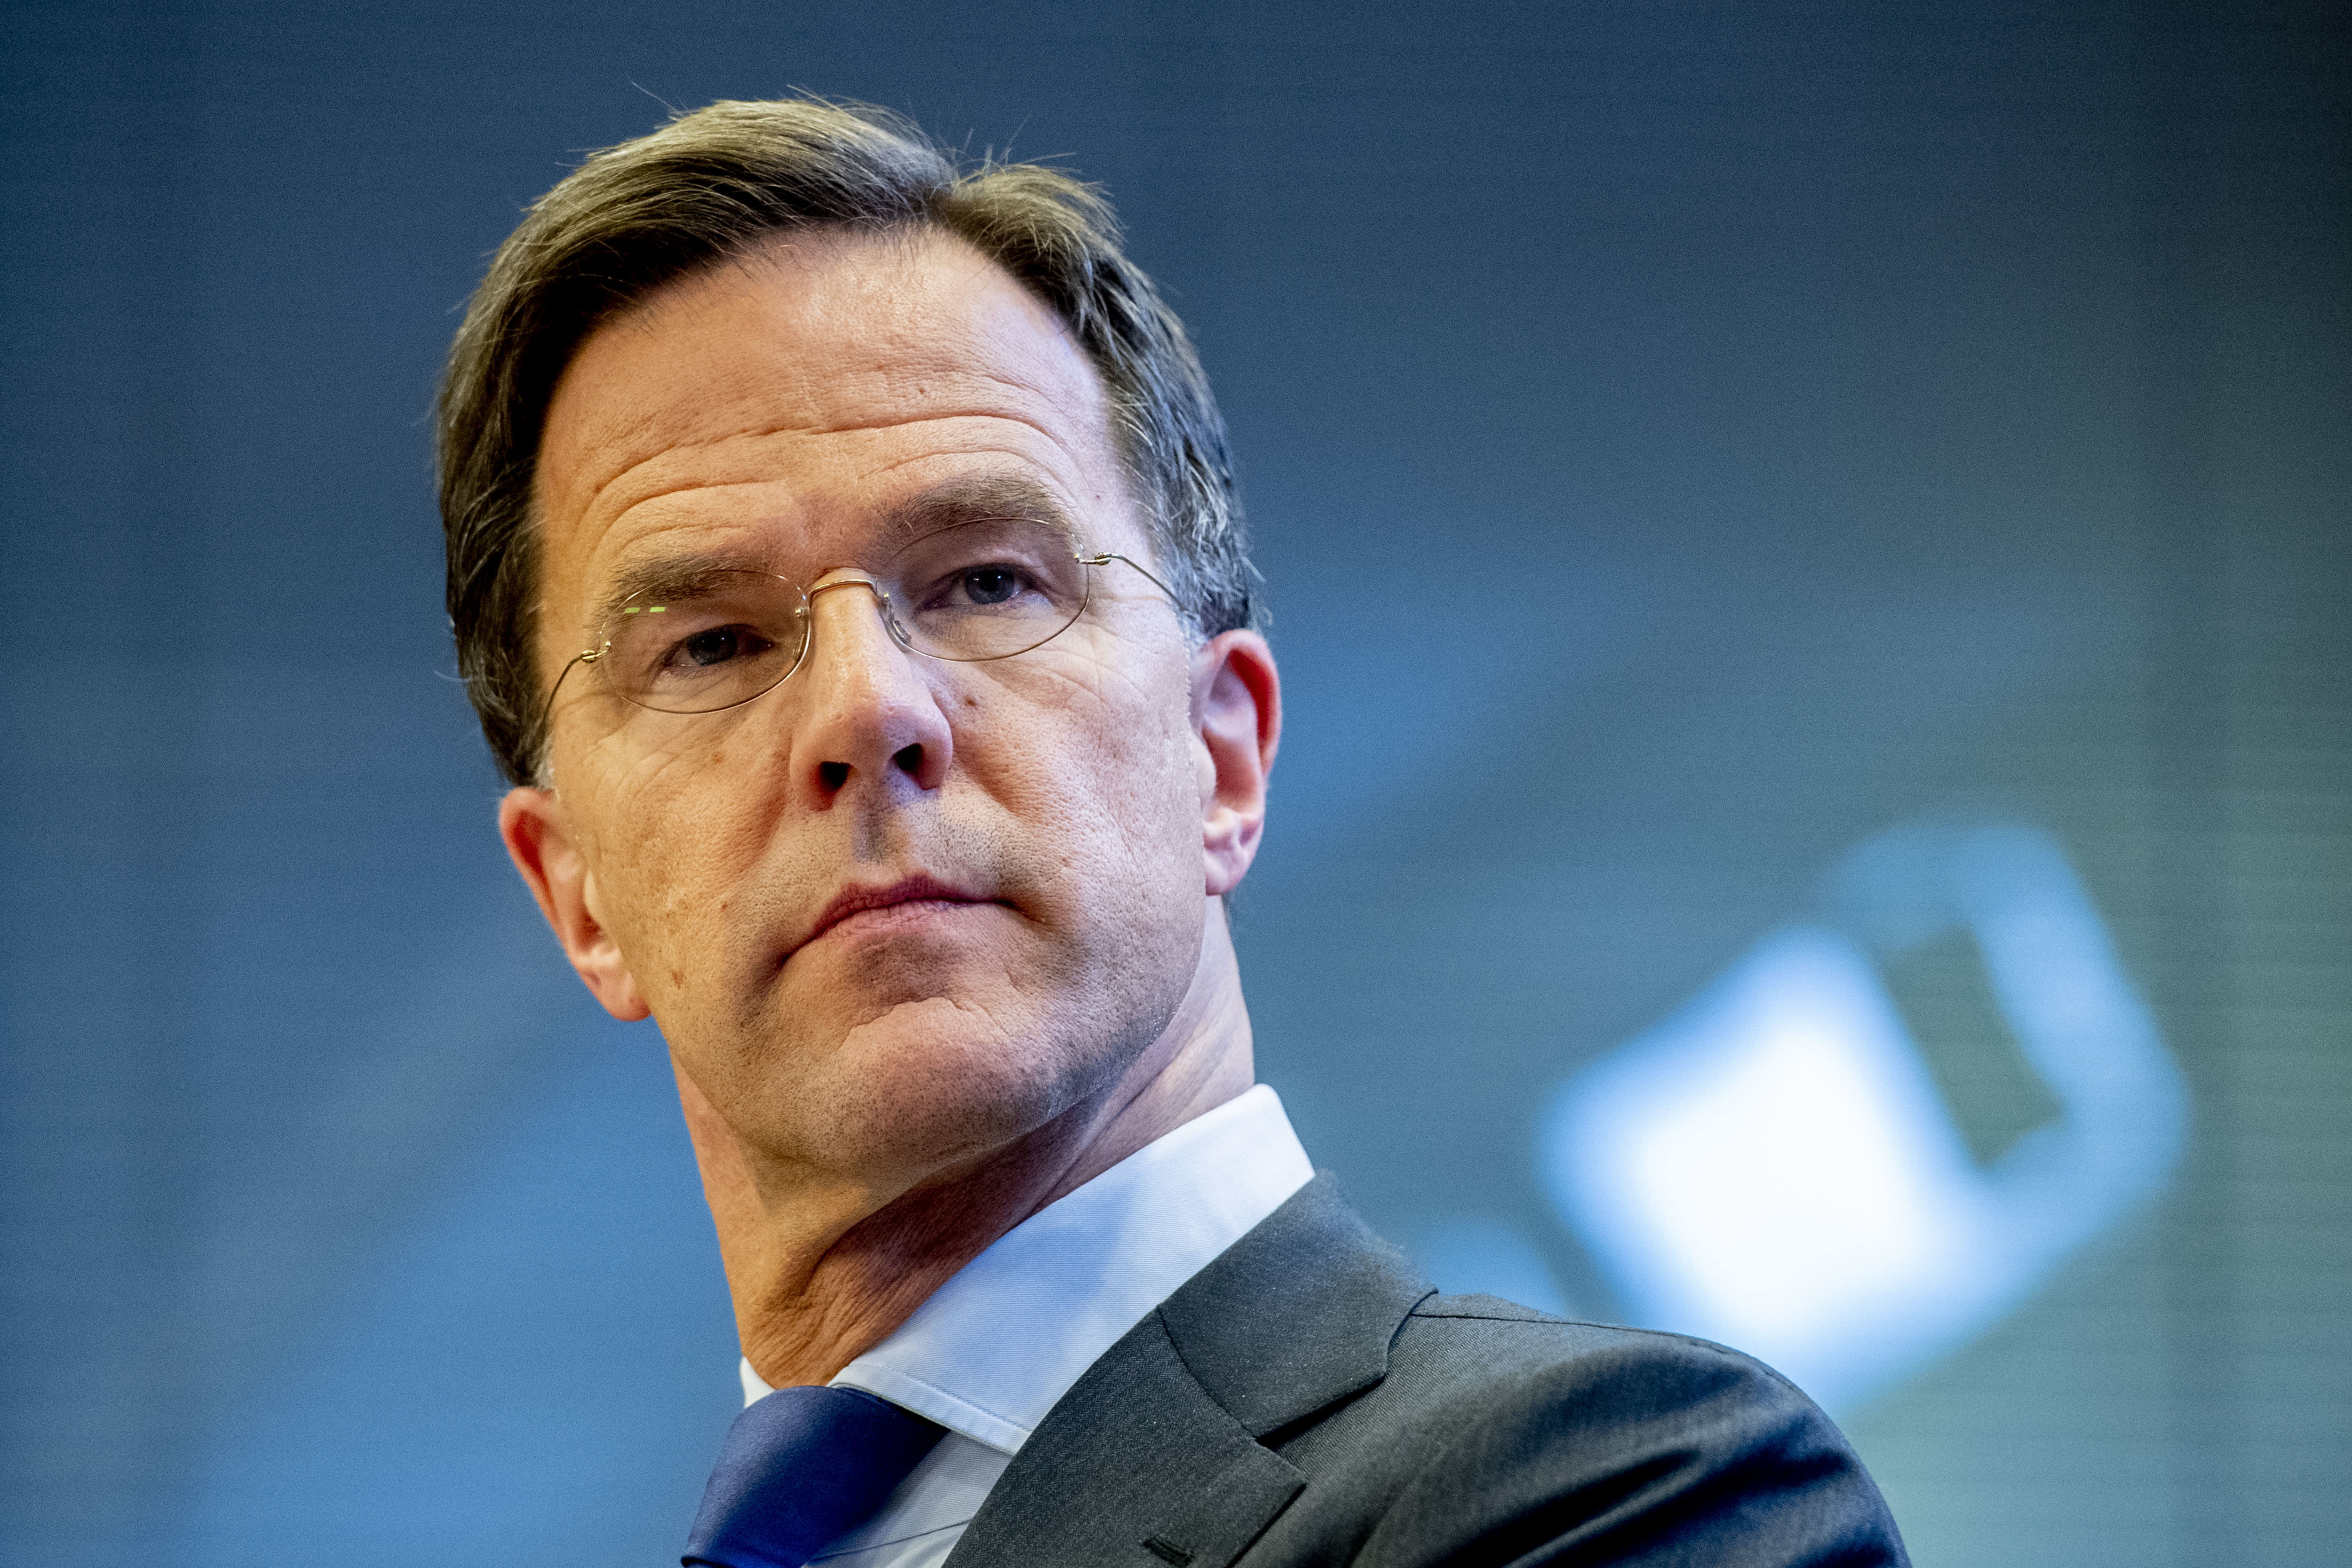 The Netherlands offers 'gifts' to southern Europe as the region's death toll continues to rise